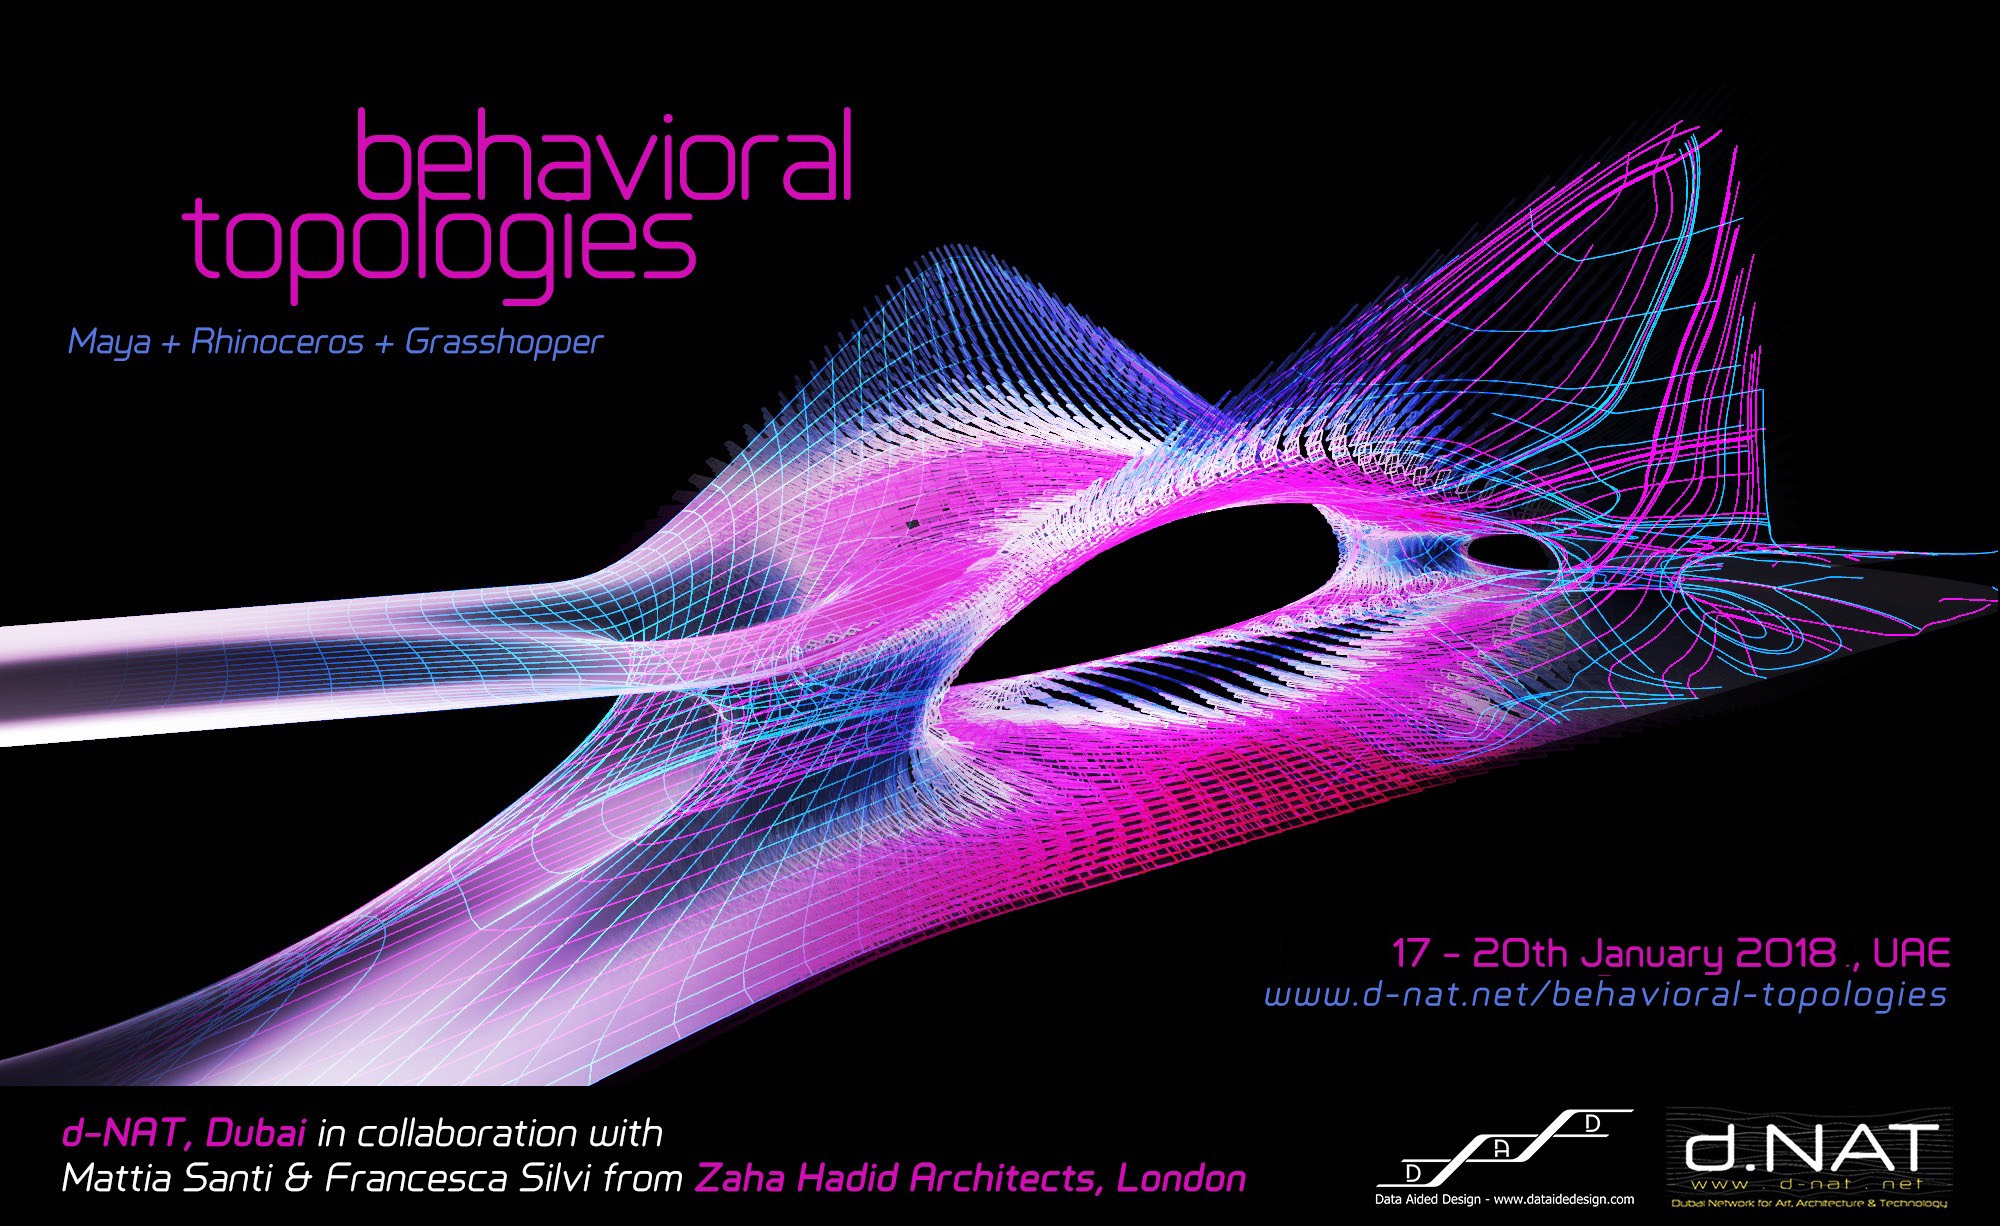 BehavioralTopologies_Poster_s.jpg